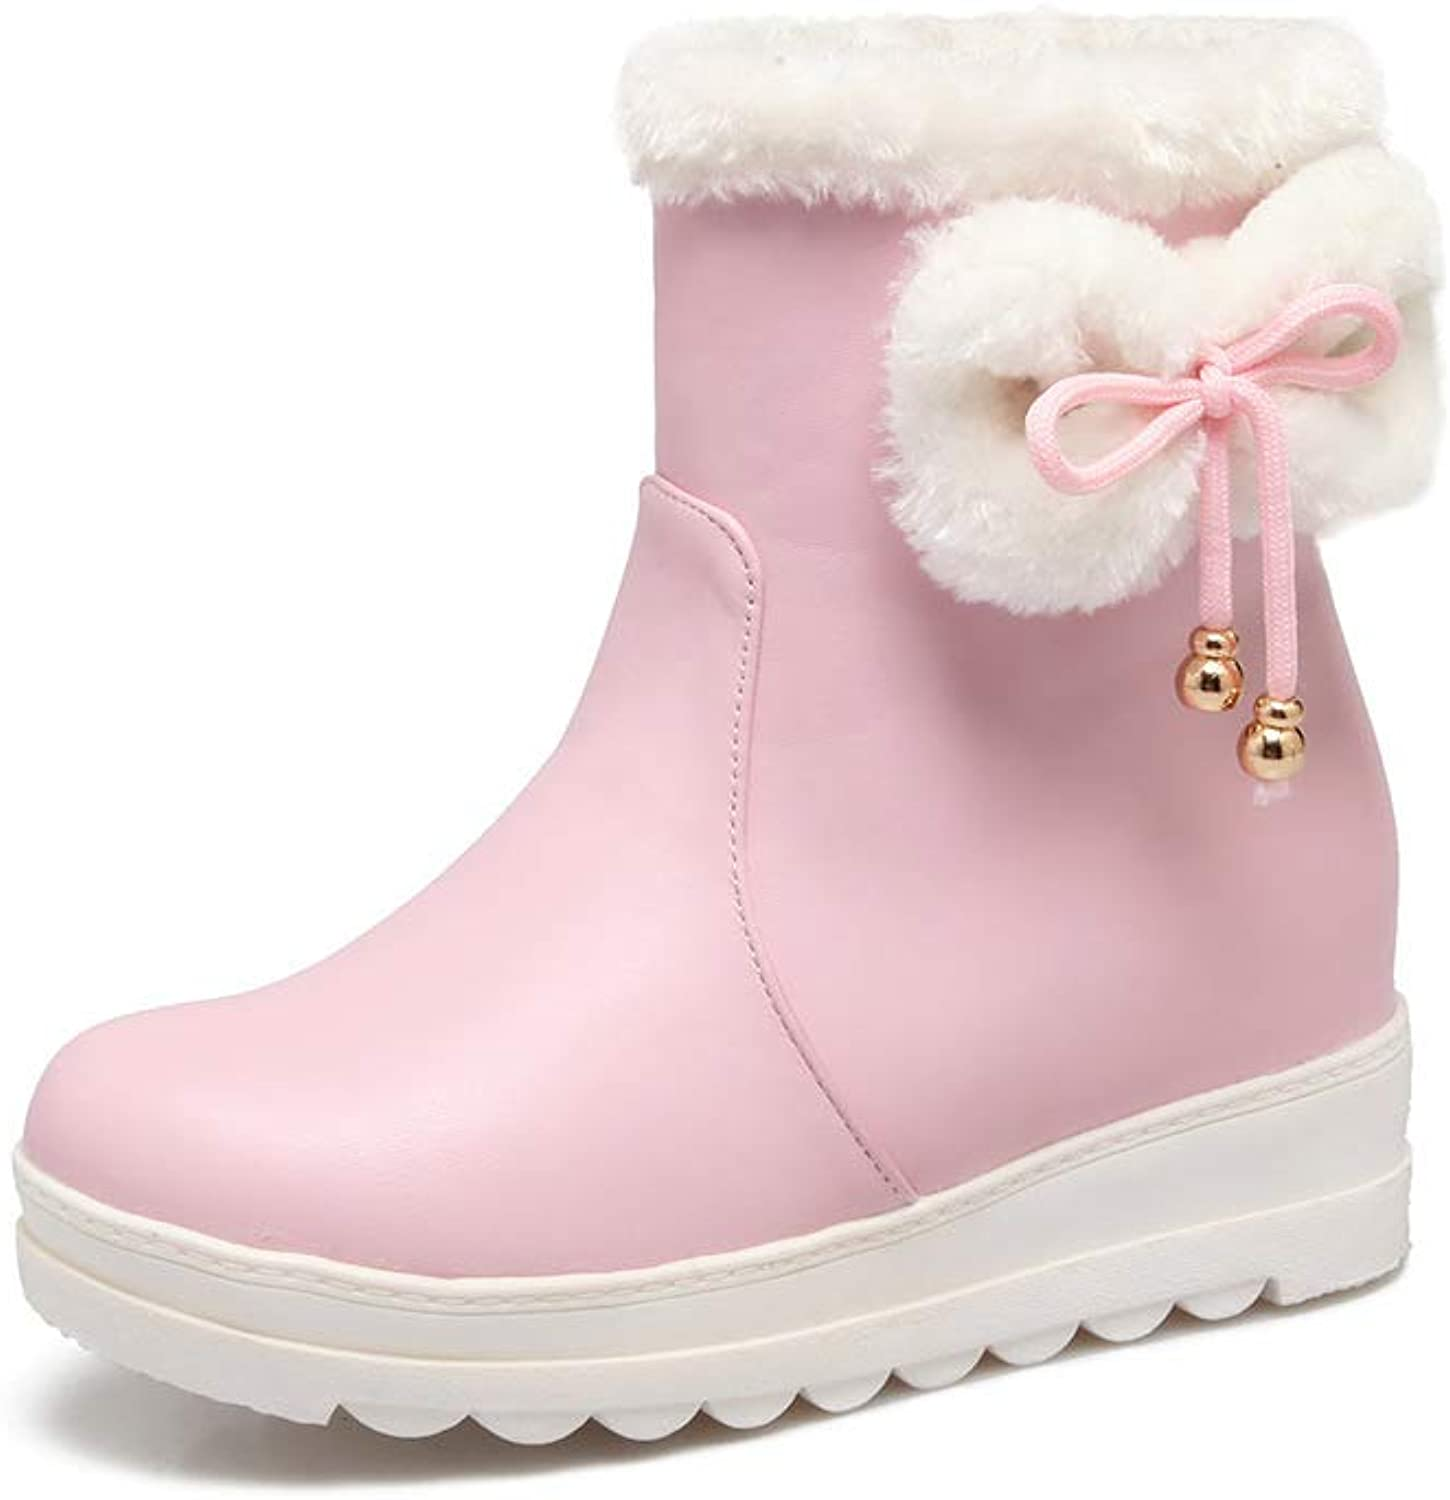 Women Sweet Bow Cotton Boots 2018 Winter Warm Snow Boots Outdoor Warm Sneakers Size 30-42,Pink,40